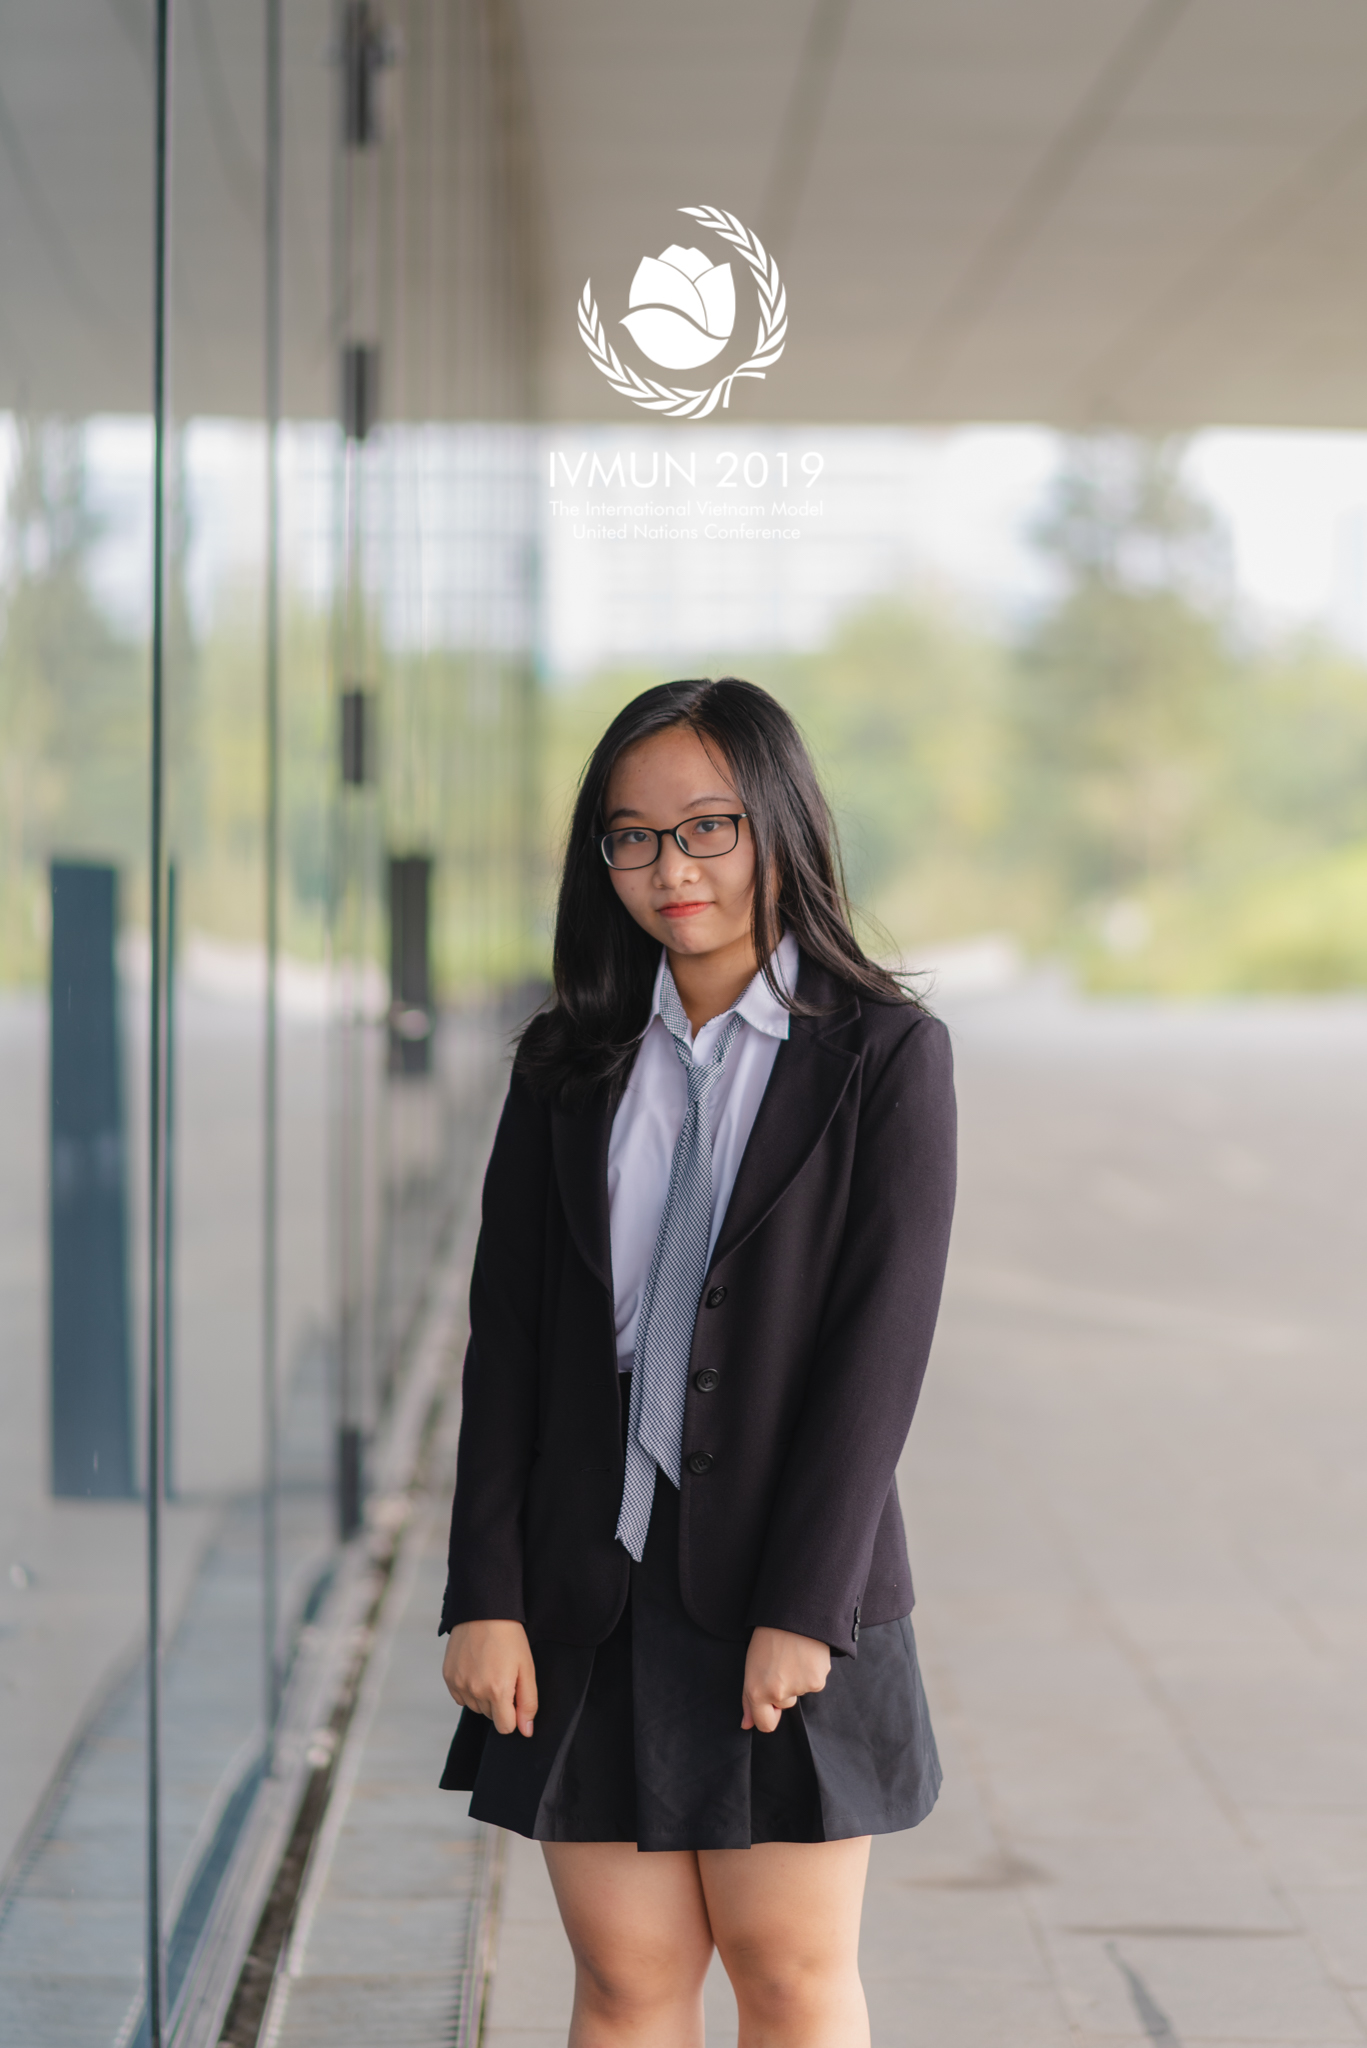 Phuong-Linh Nguyen   Head of Public Relations